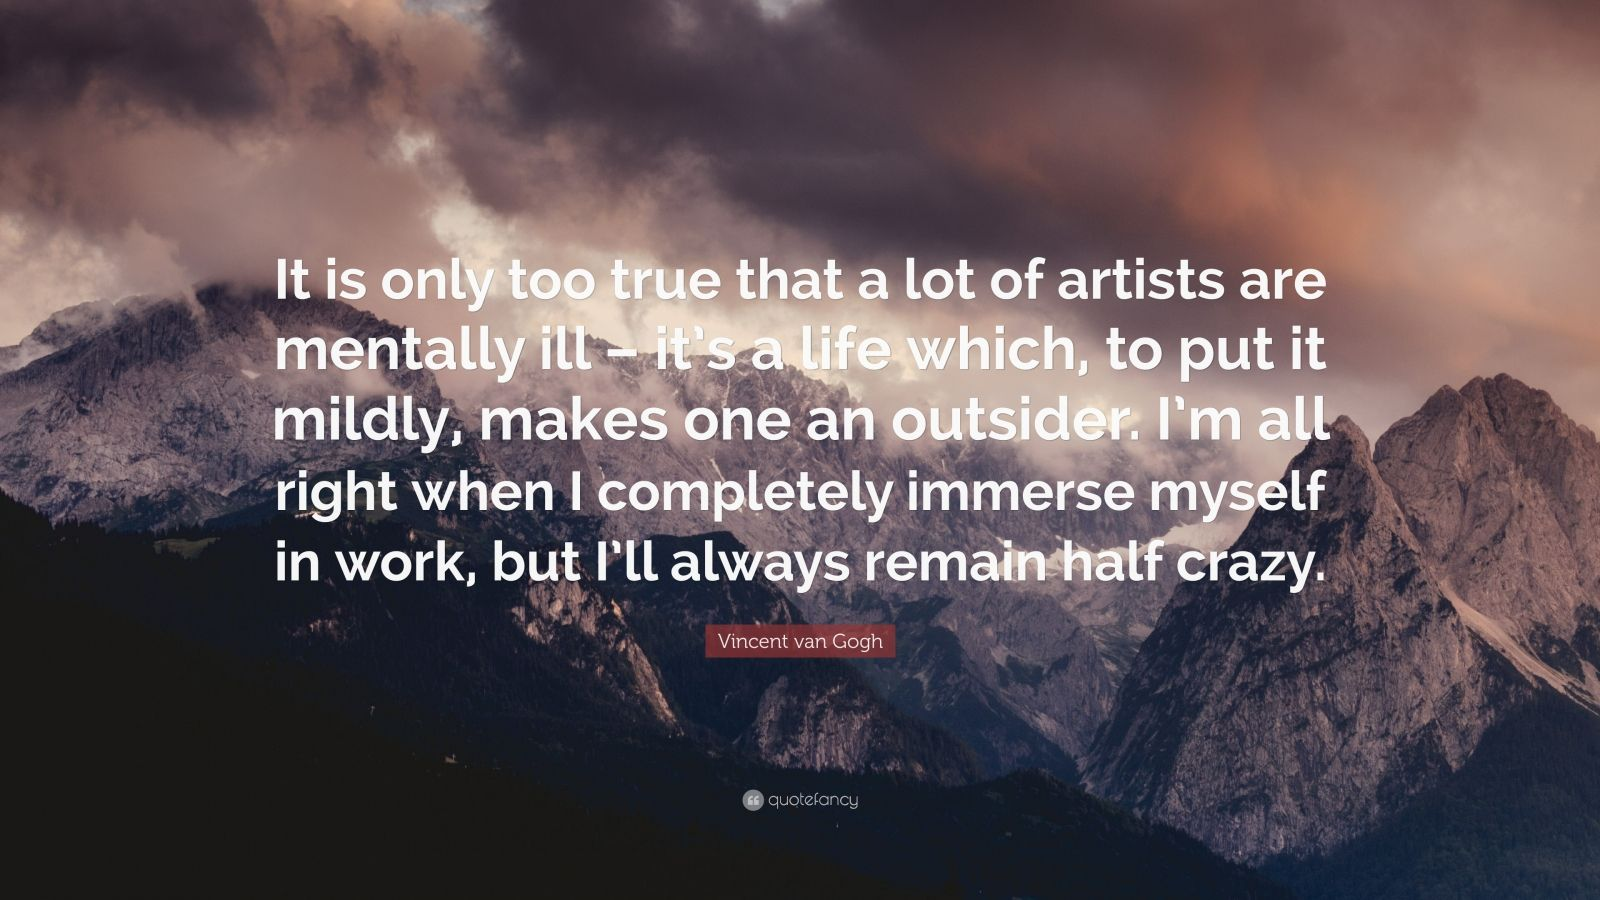 """Vincent Van Gogh Quotes: """"It is only too true that a lot of artists are mentally ill – it's a life which, to put it mildly, makes one an outsider. I'm all right when I completely immerse myself in work, but I'll always remain half crazy."""" — Vincent van Gogh"""